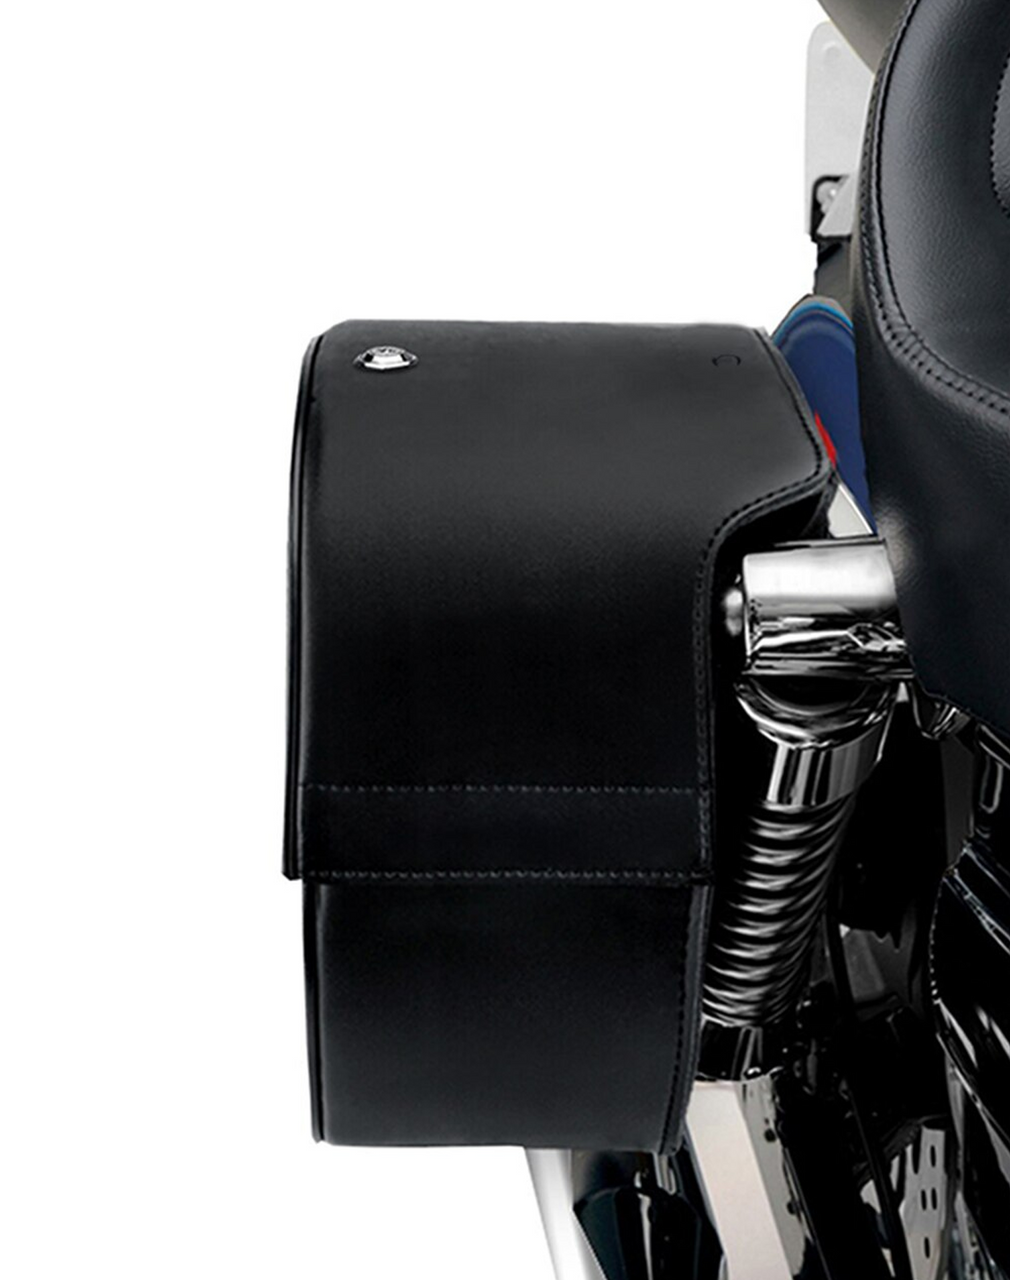 Viking Shock Cutout Slanted Studded Large Motorcycle Saddlebags For Harley Sportster Seventy Two 72 Shock cutout view